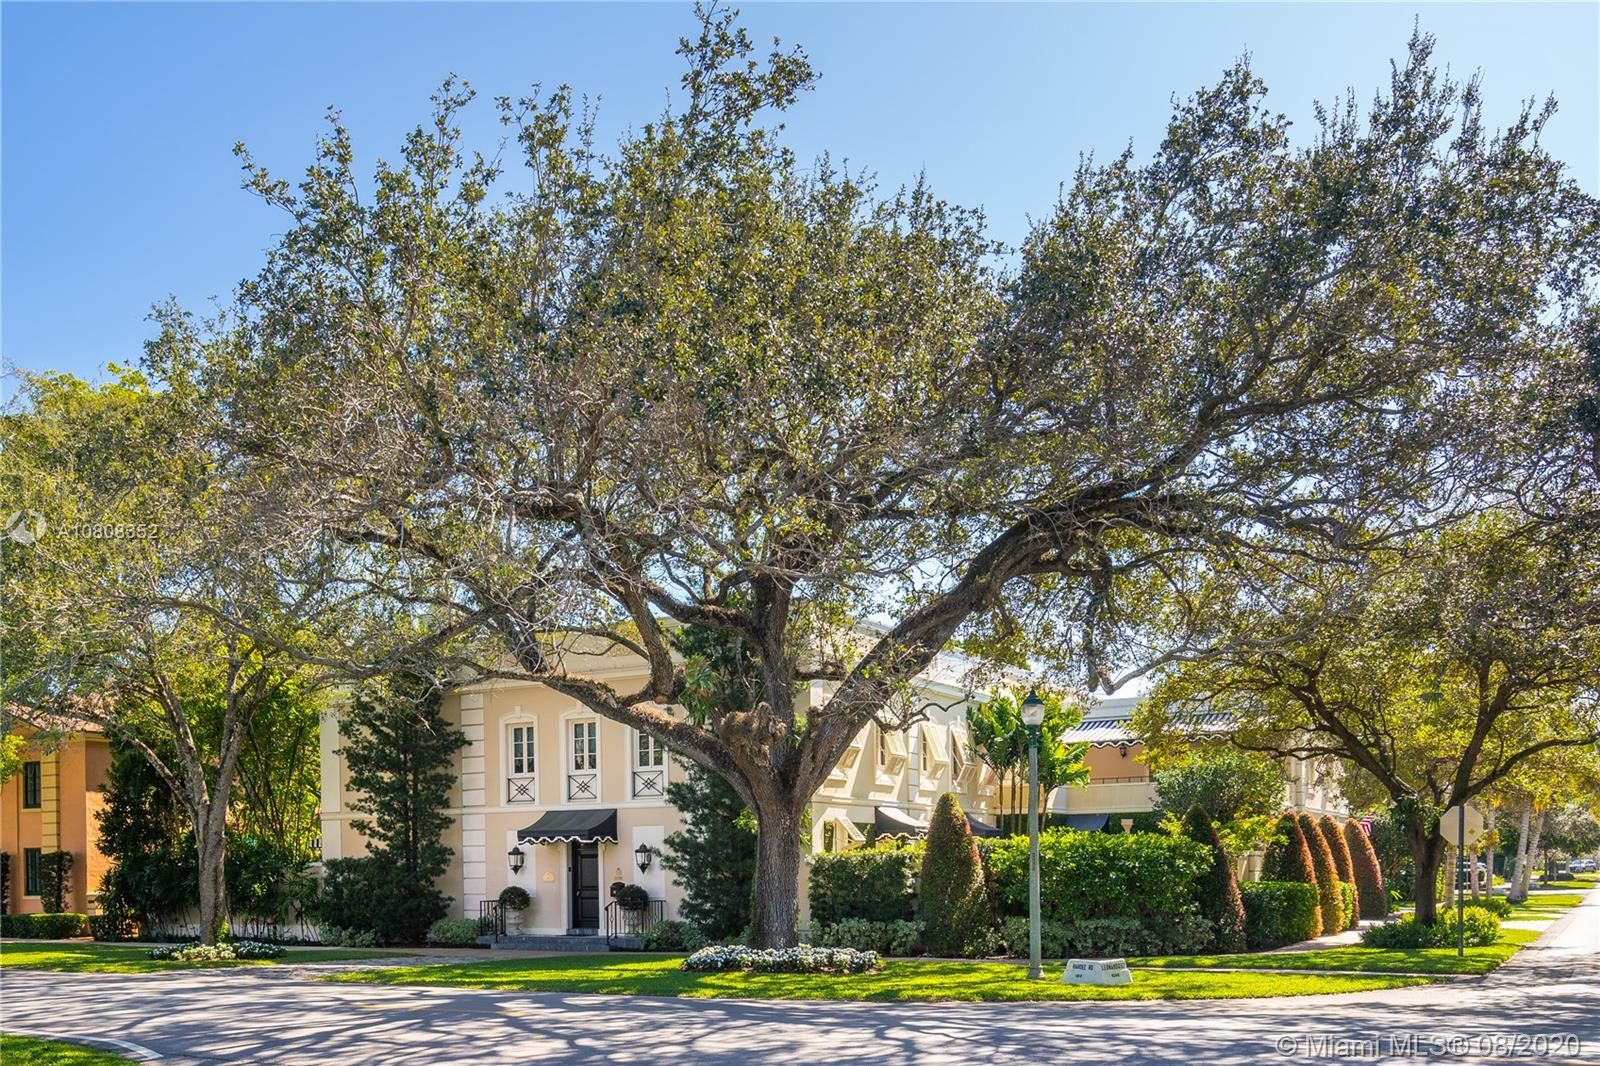 1030 Hardee Rd, Coral Gables, FL 33146 - #: A10808352